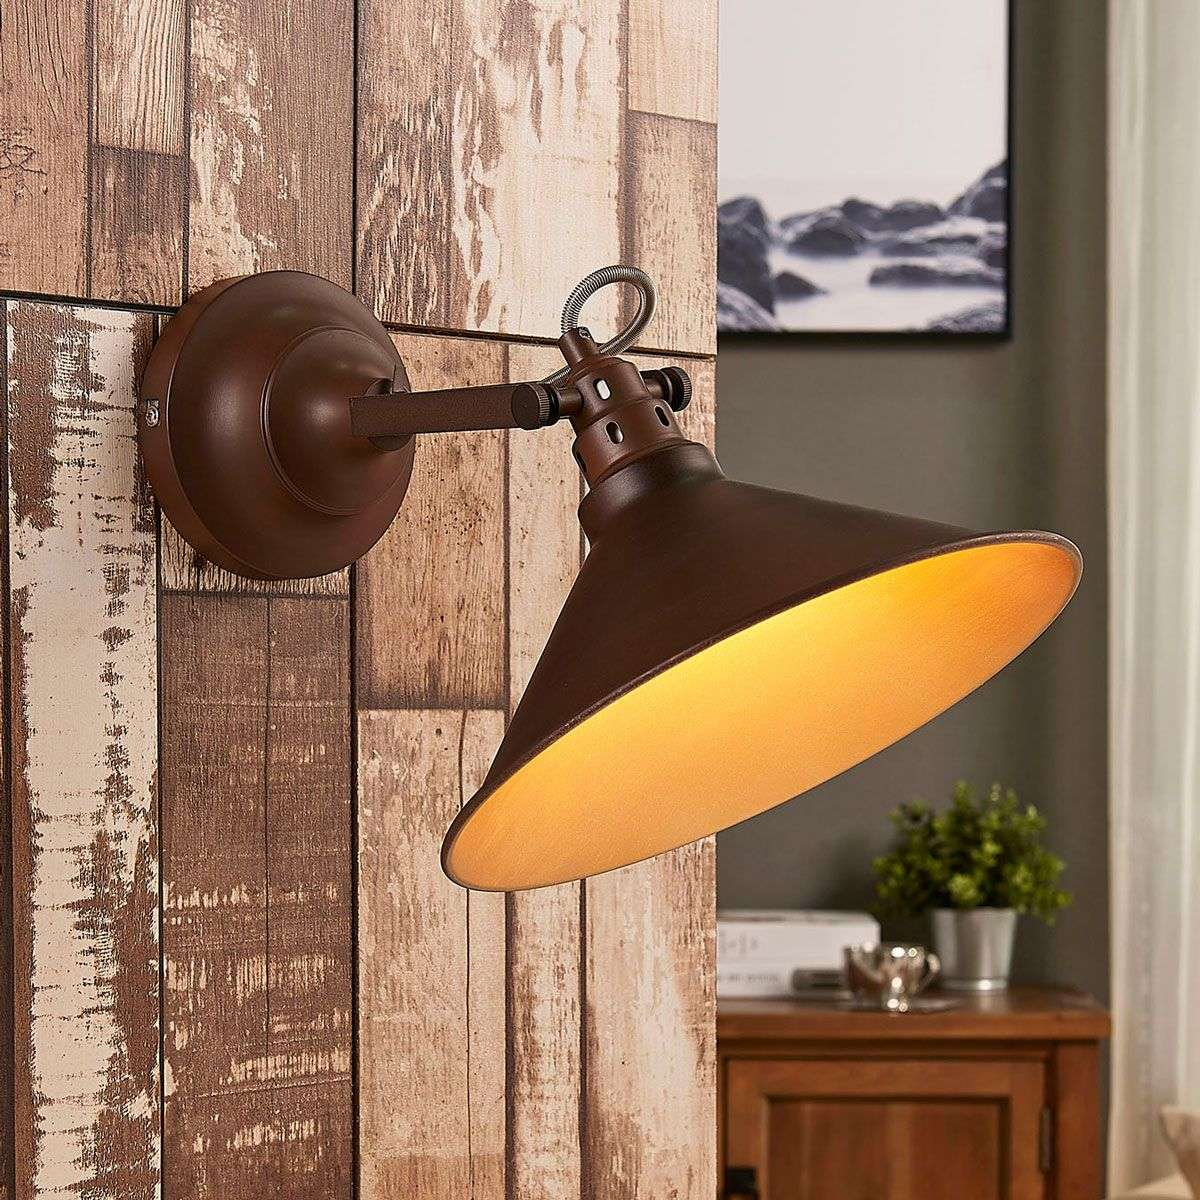 industrial look lighting. Abby Wall Light With Industrial Look, Rusty Brown-9621443-311 Look Lighting G